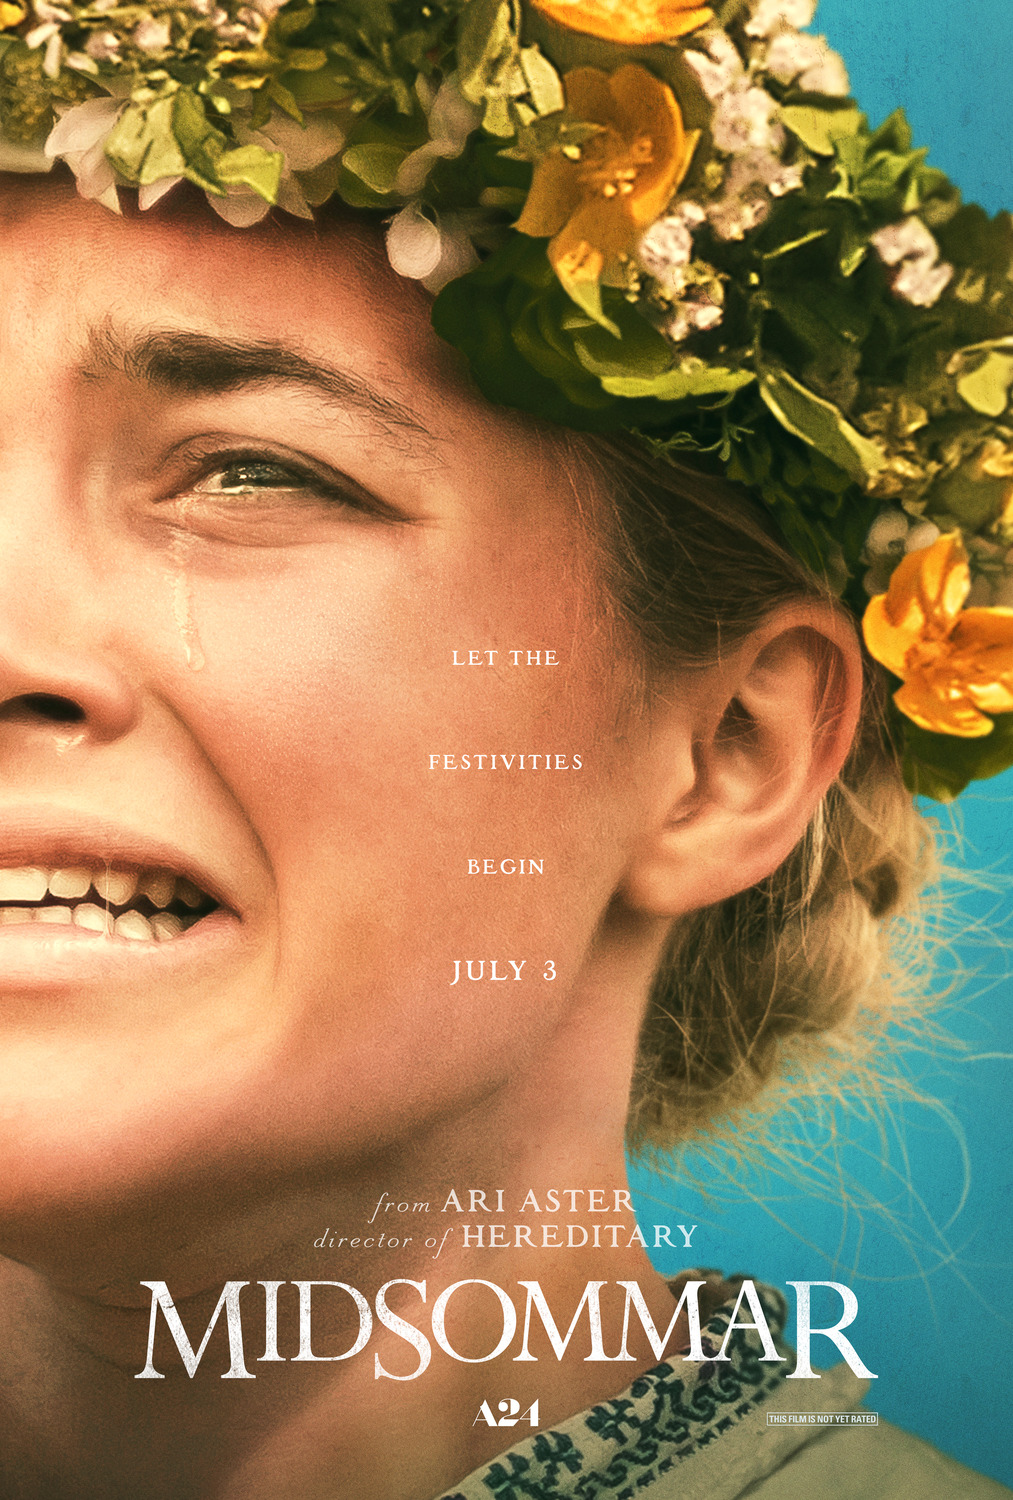 new-trailer-for-the-sinister-horror-film-midsommar-from-the-director-of-hereditary1